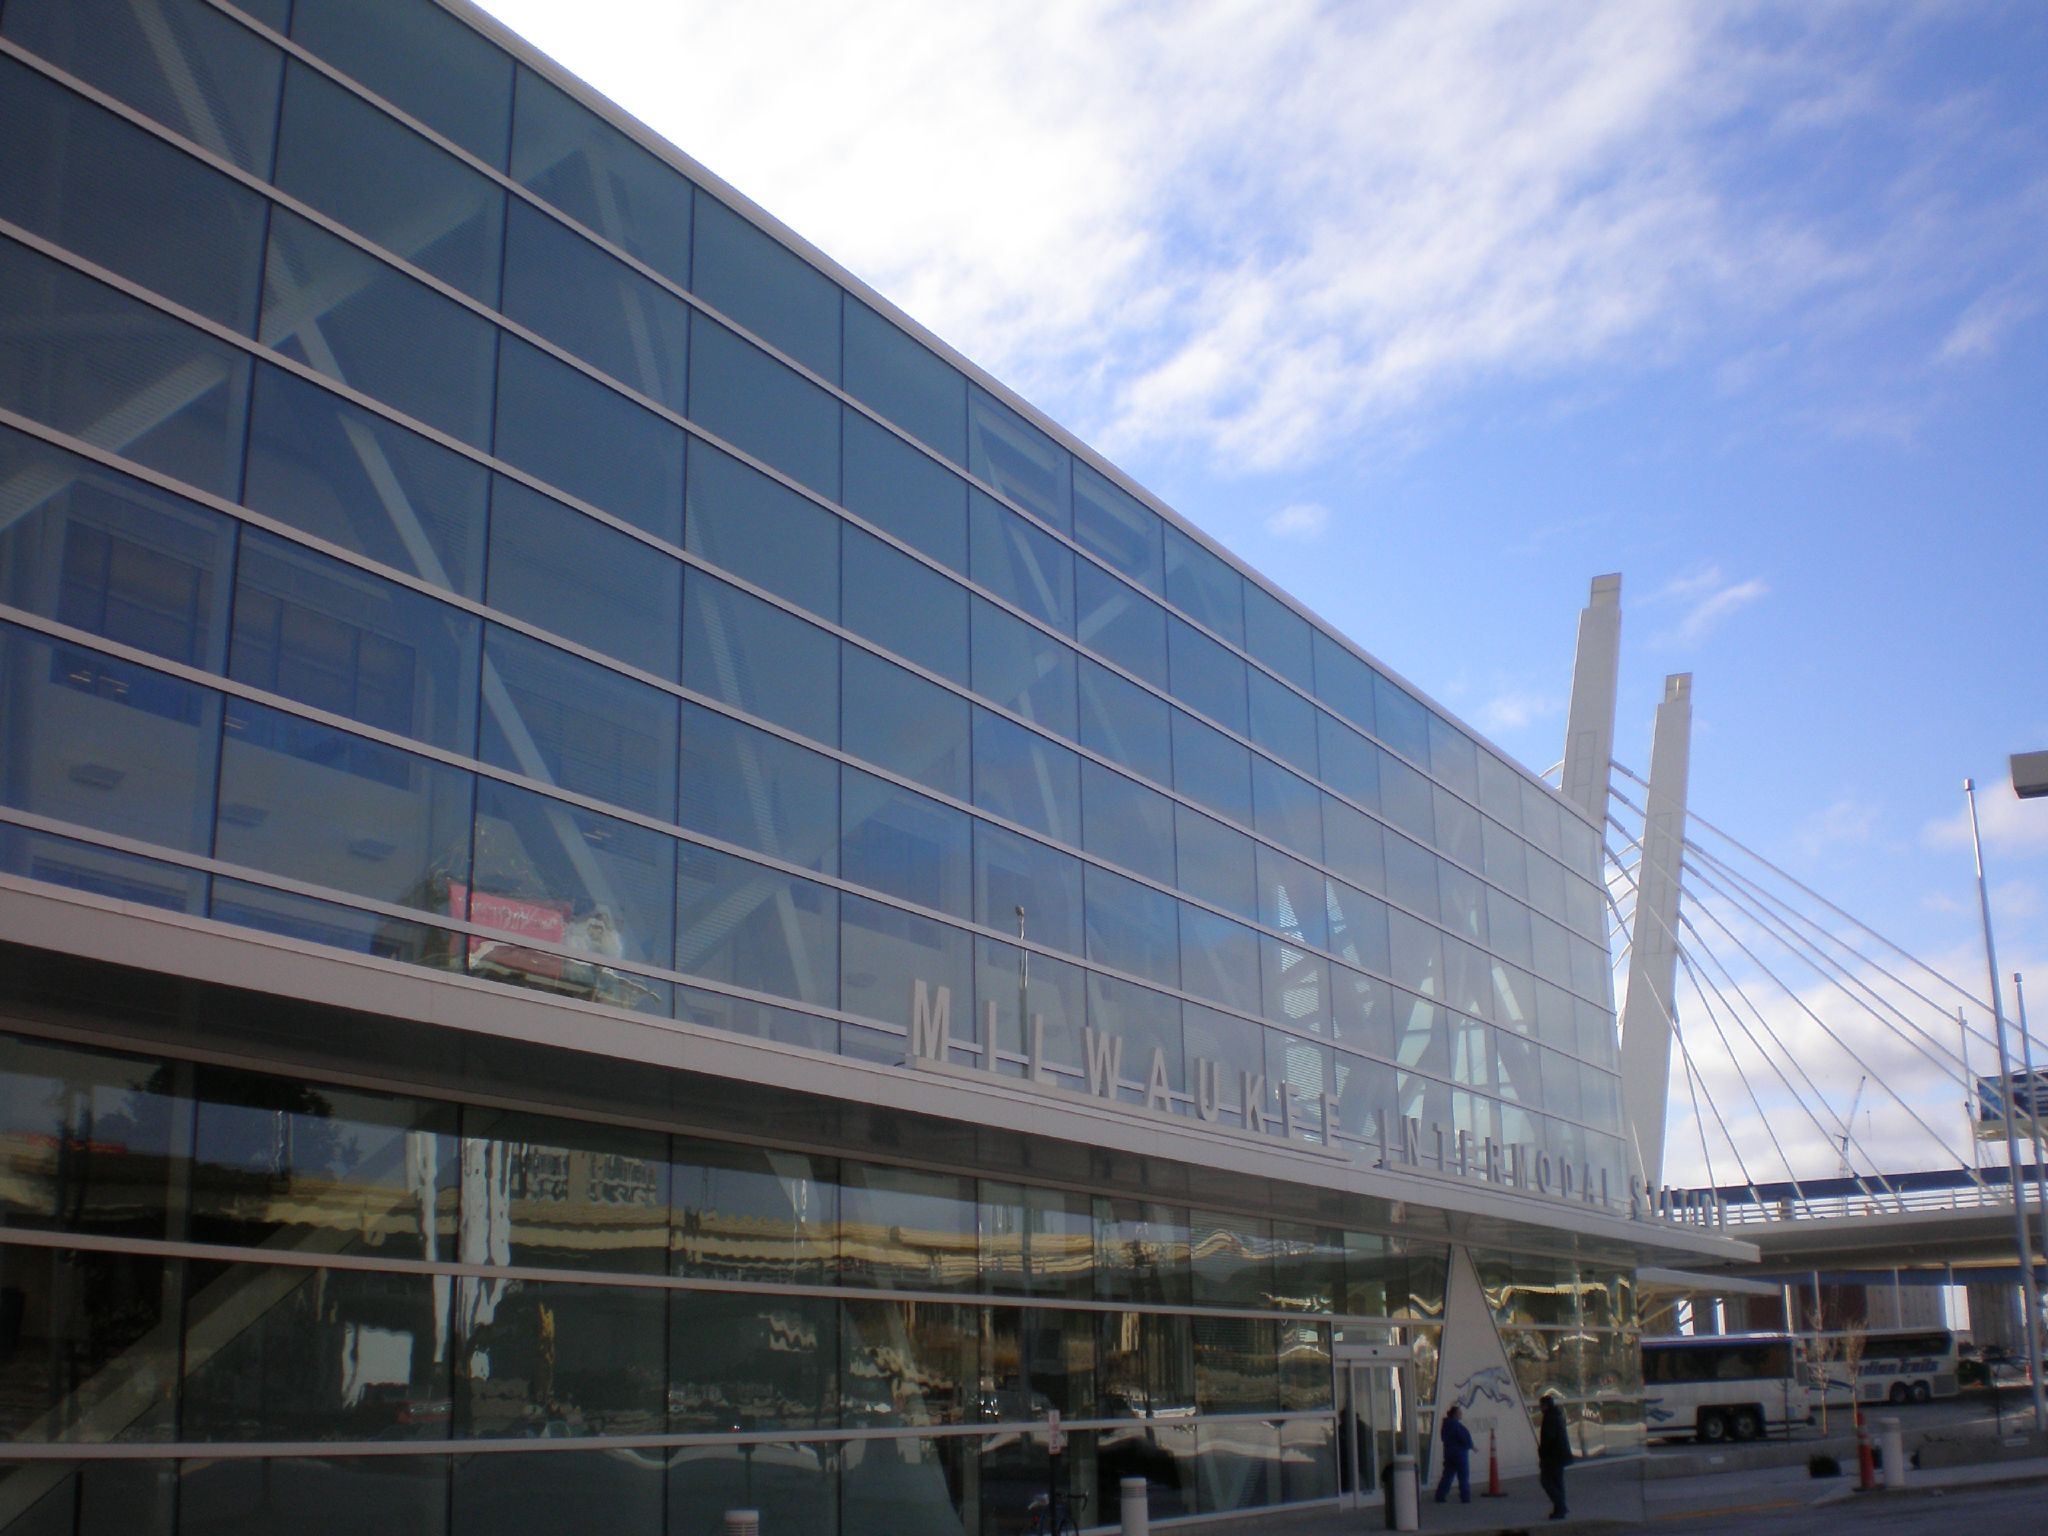 New train concourse welcomes passengers at Milwaukee Intermodal Station